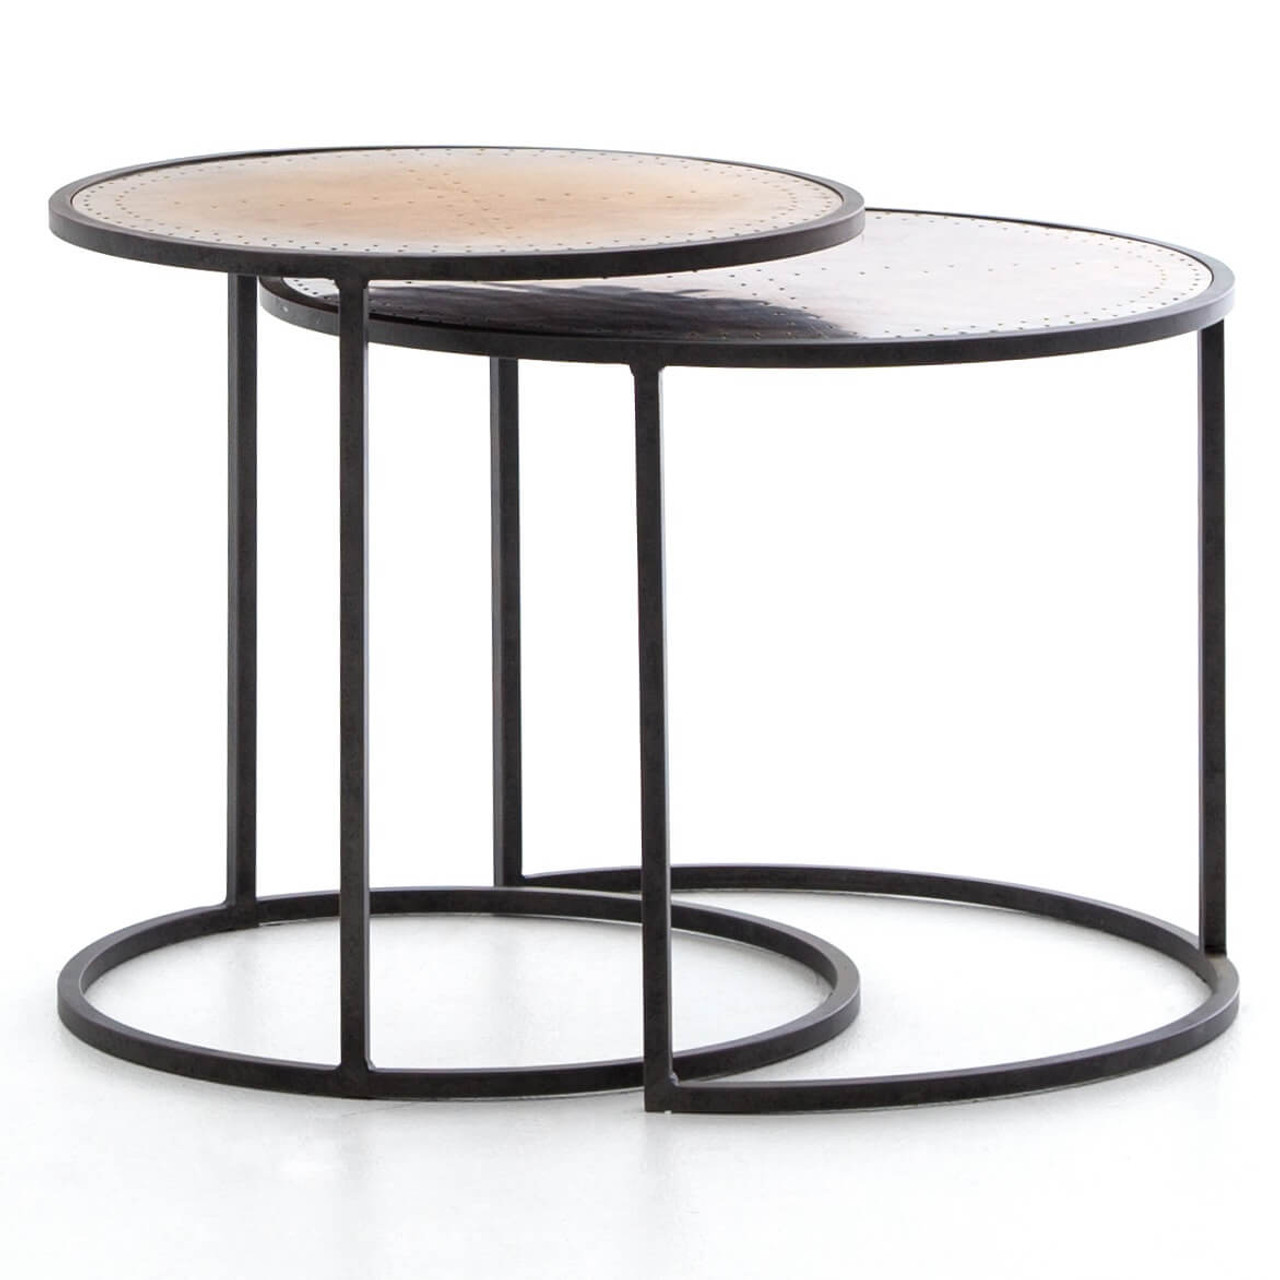 Amazing Catalina Brass Clad Round Nesting Side Tables